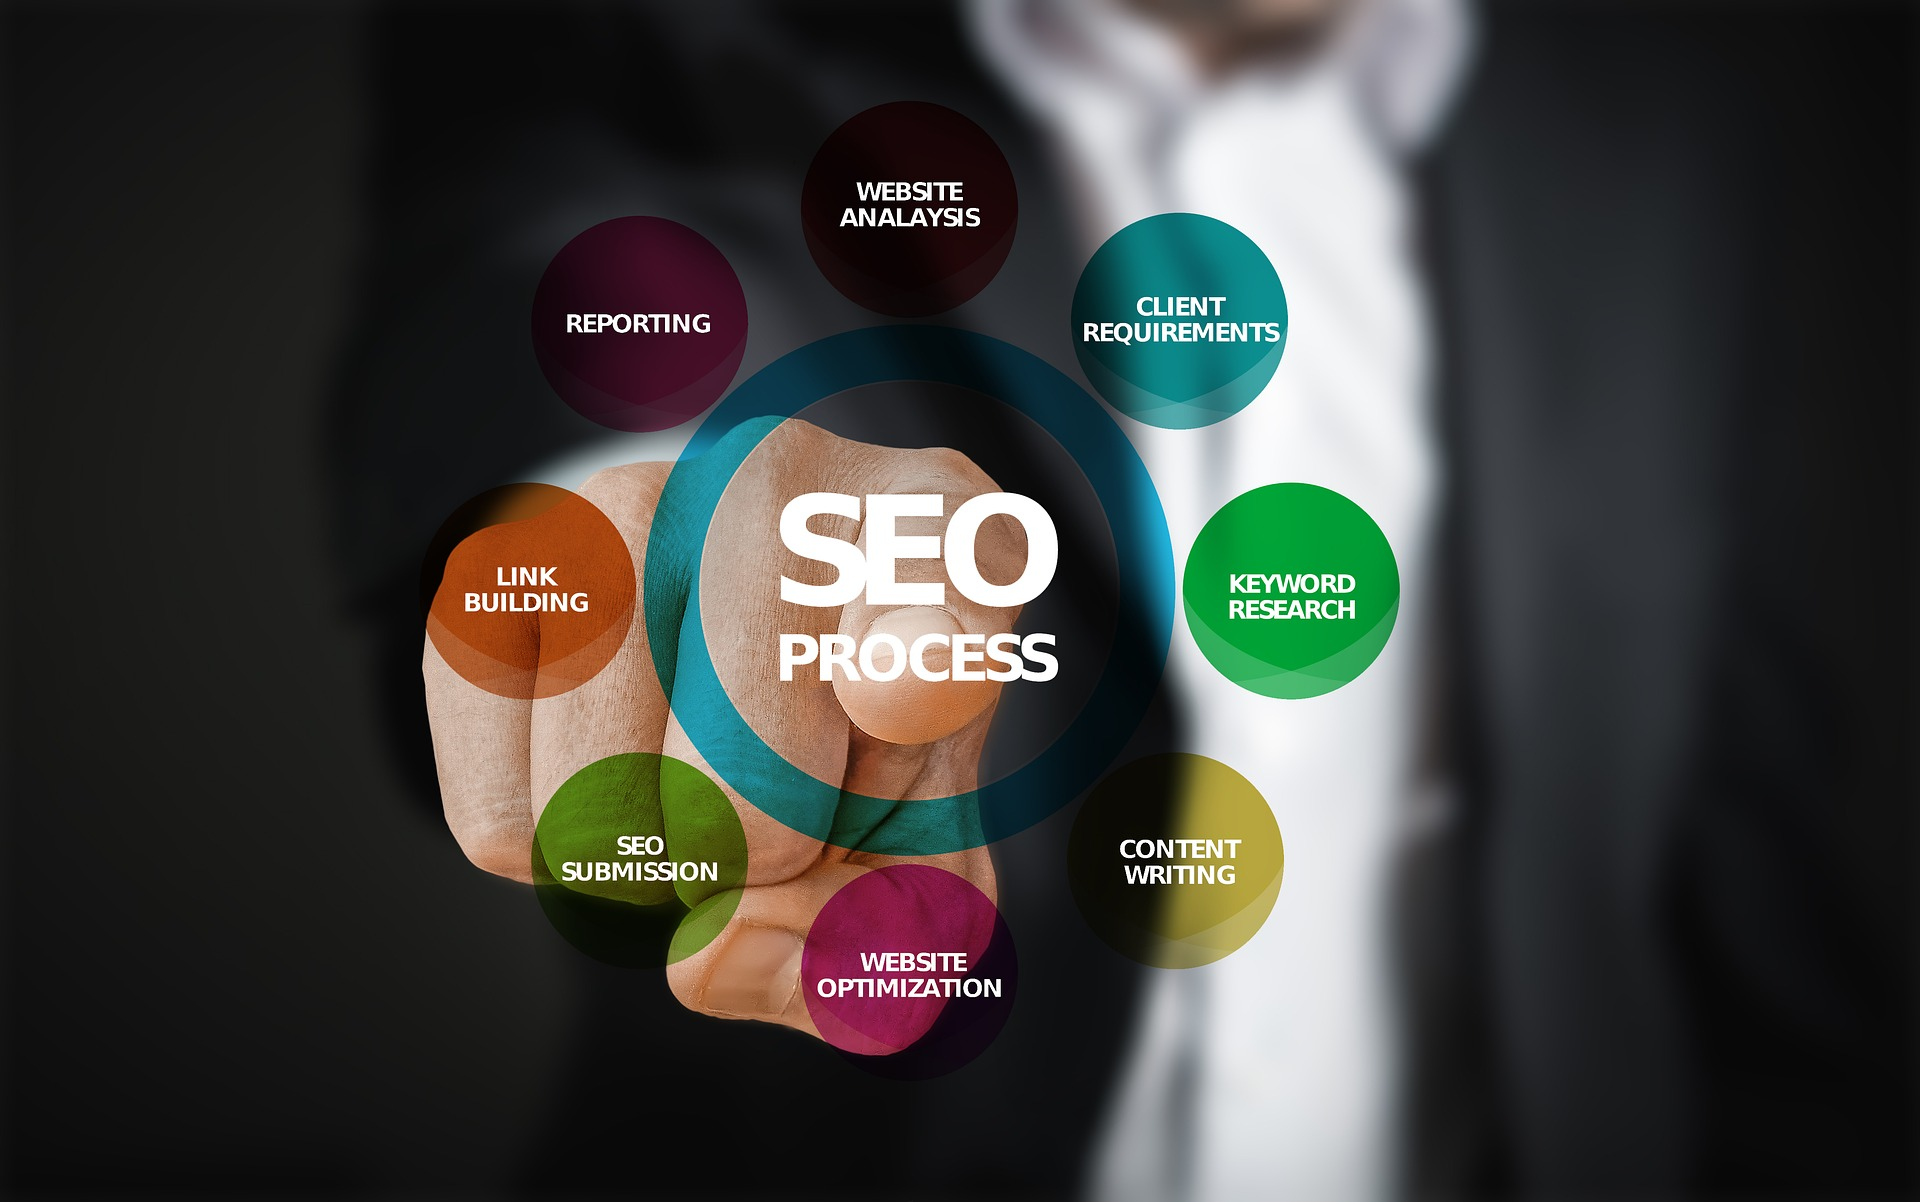 I will provide a professional SEO audit report